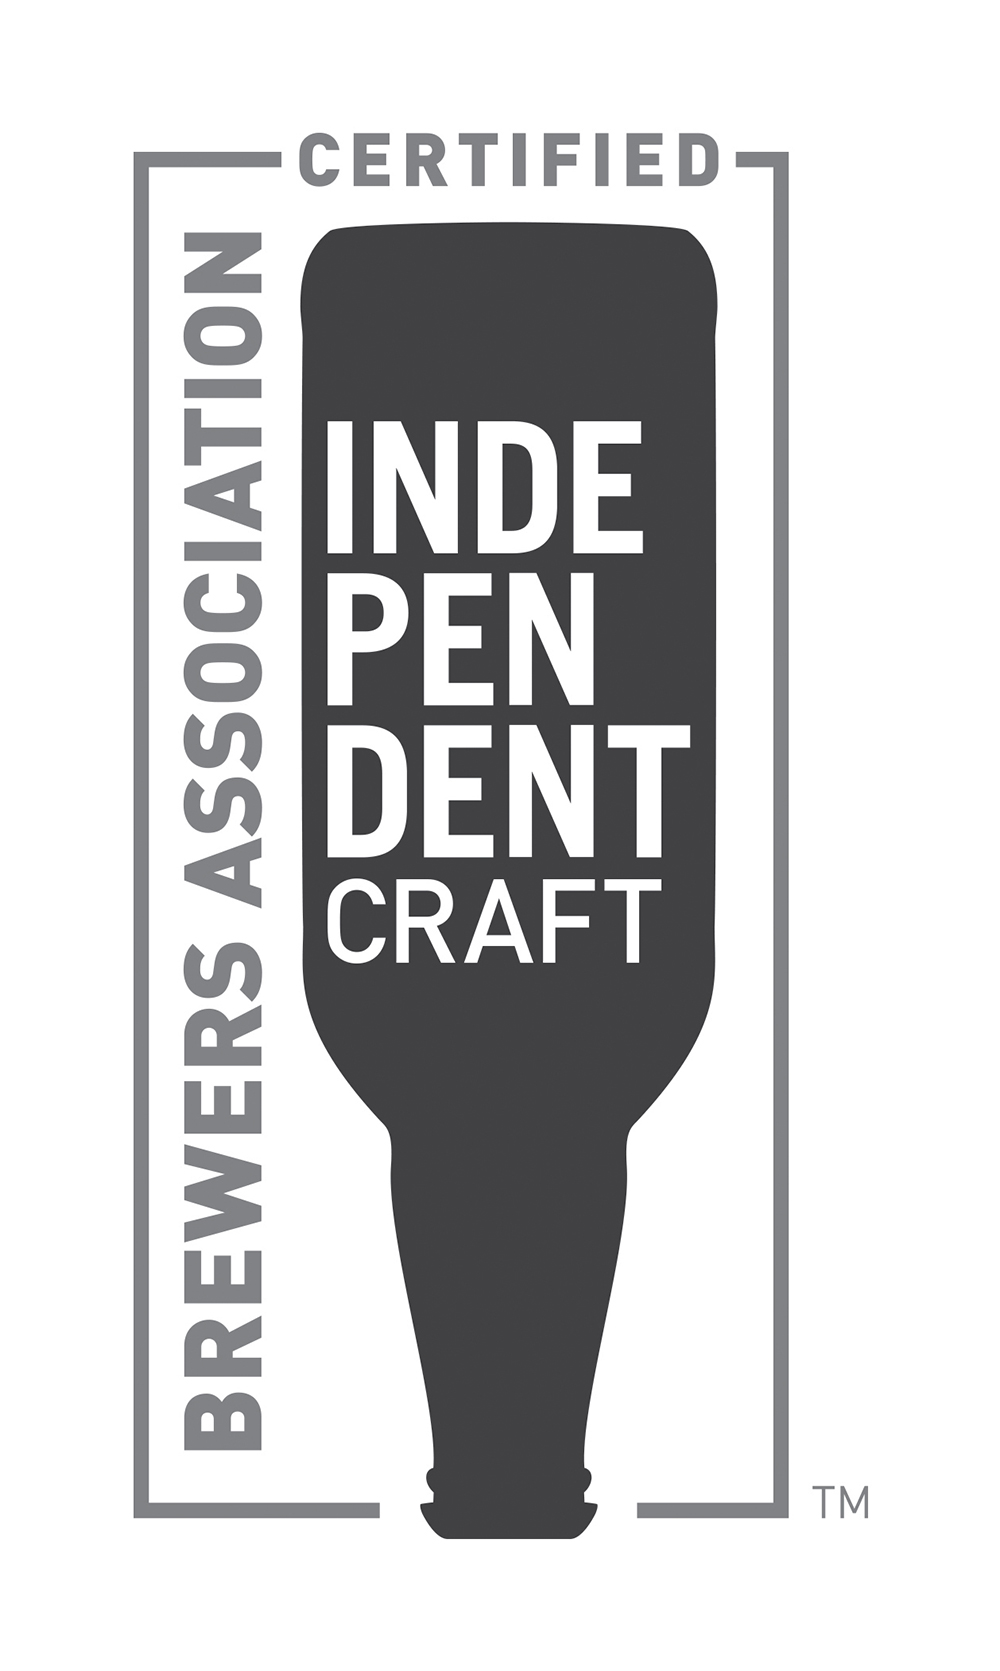 new seal for craft beers from beer association